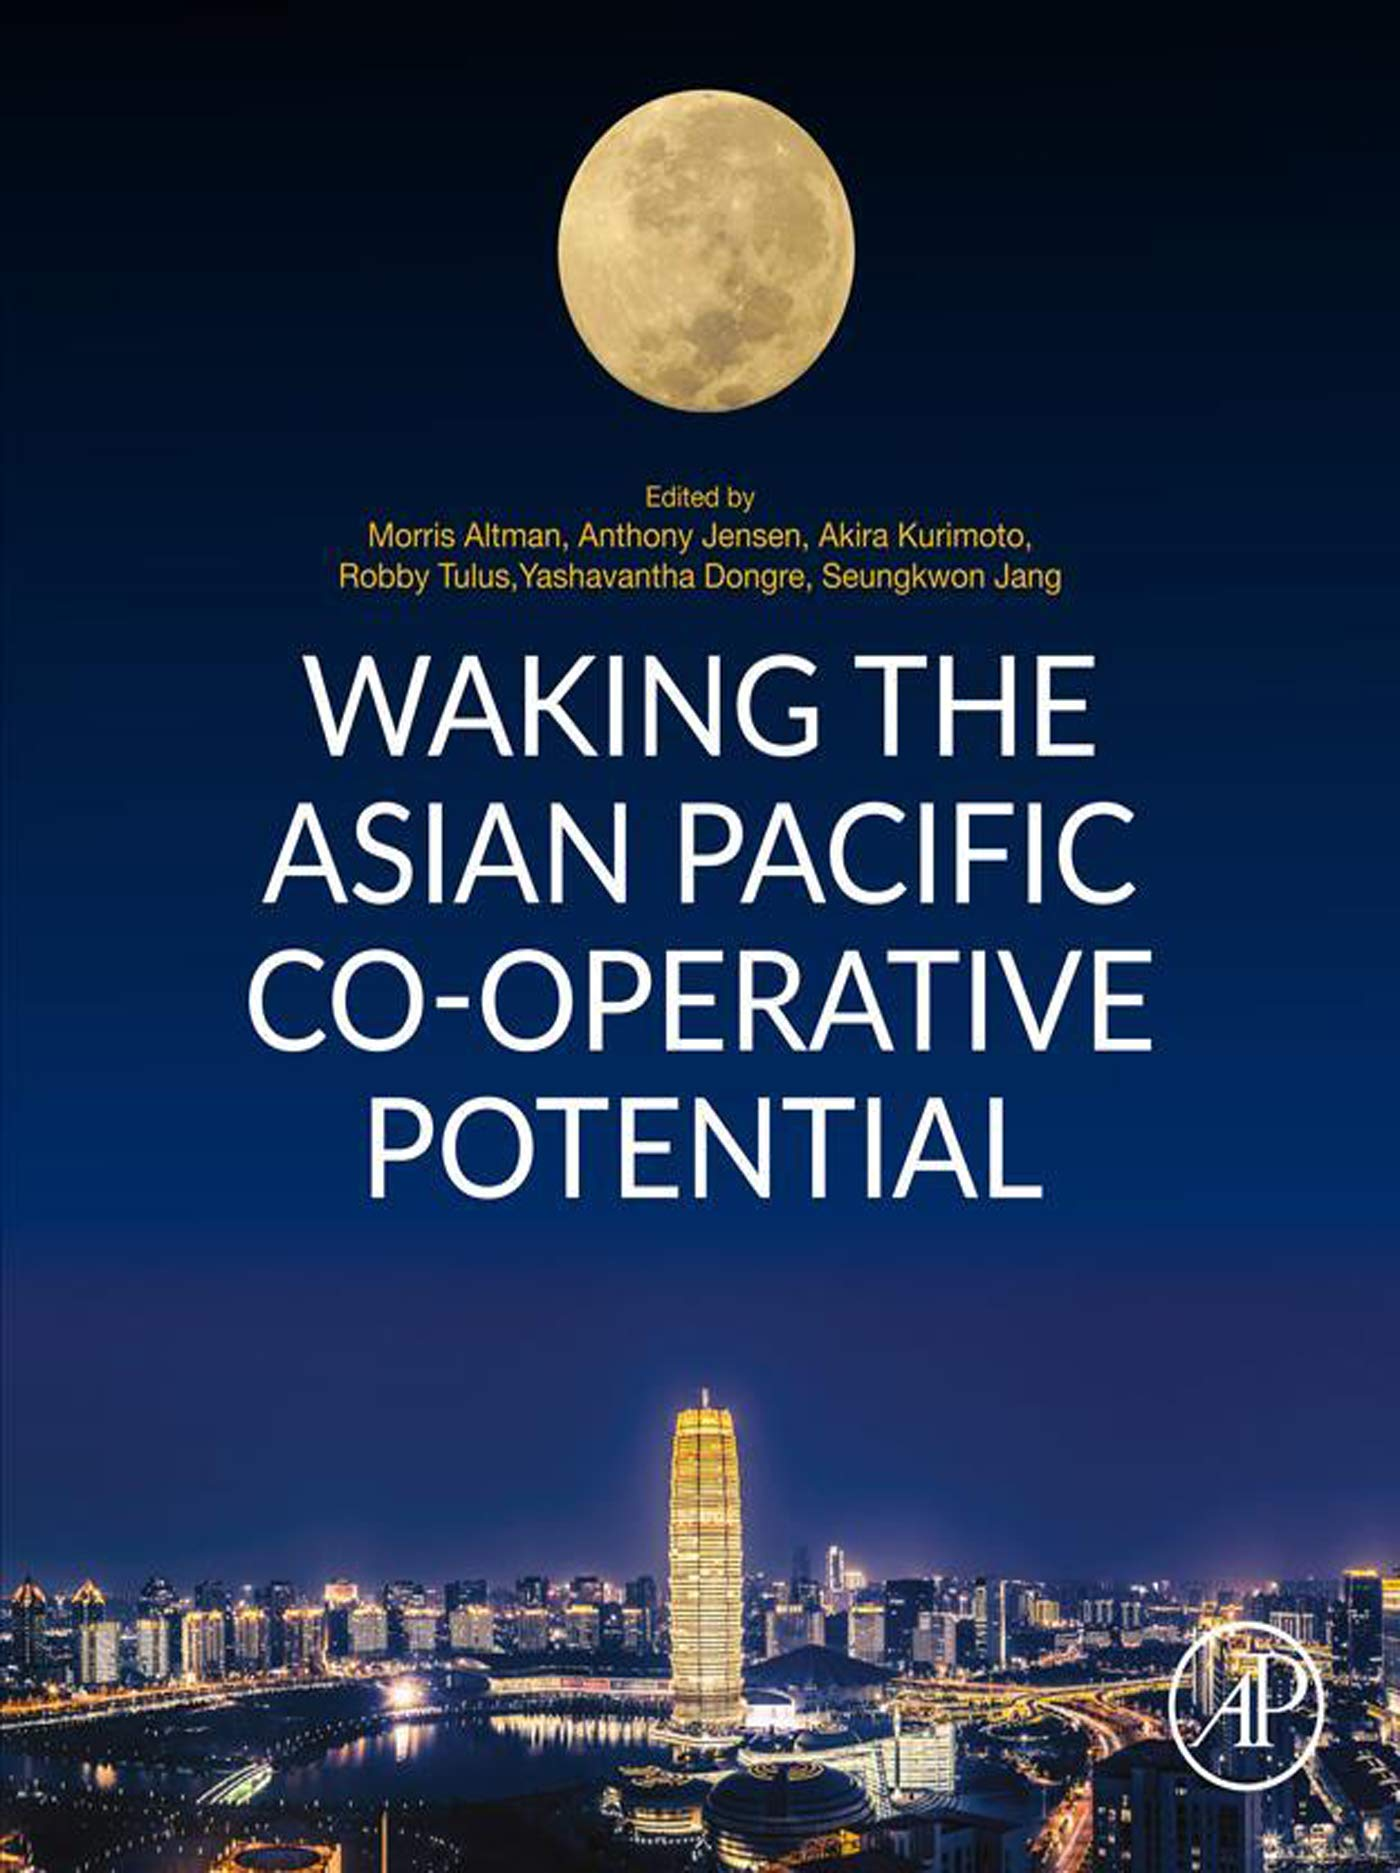 Waking the Asian Pacific Co-operative Potential: How Co-operative Firms Started, Overcame Challenges, and Addressed Poverty Across the Asia Pacific